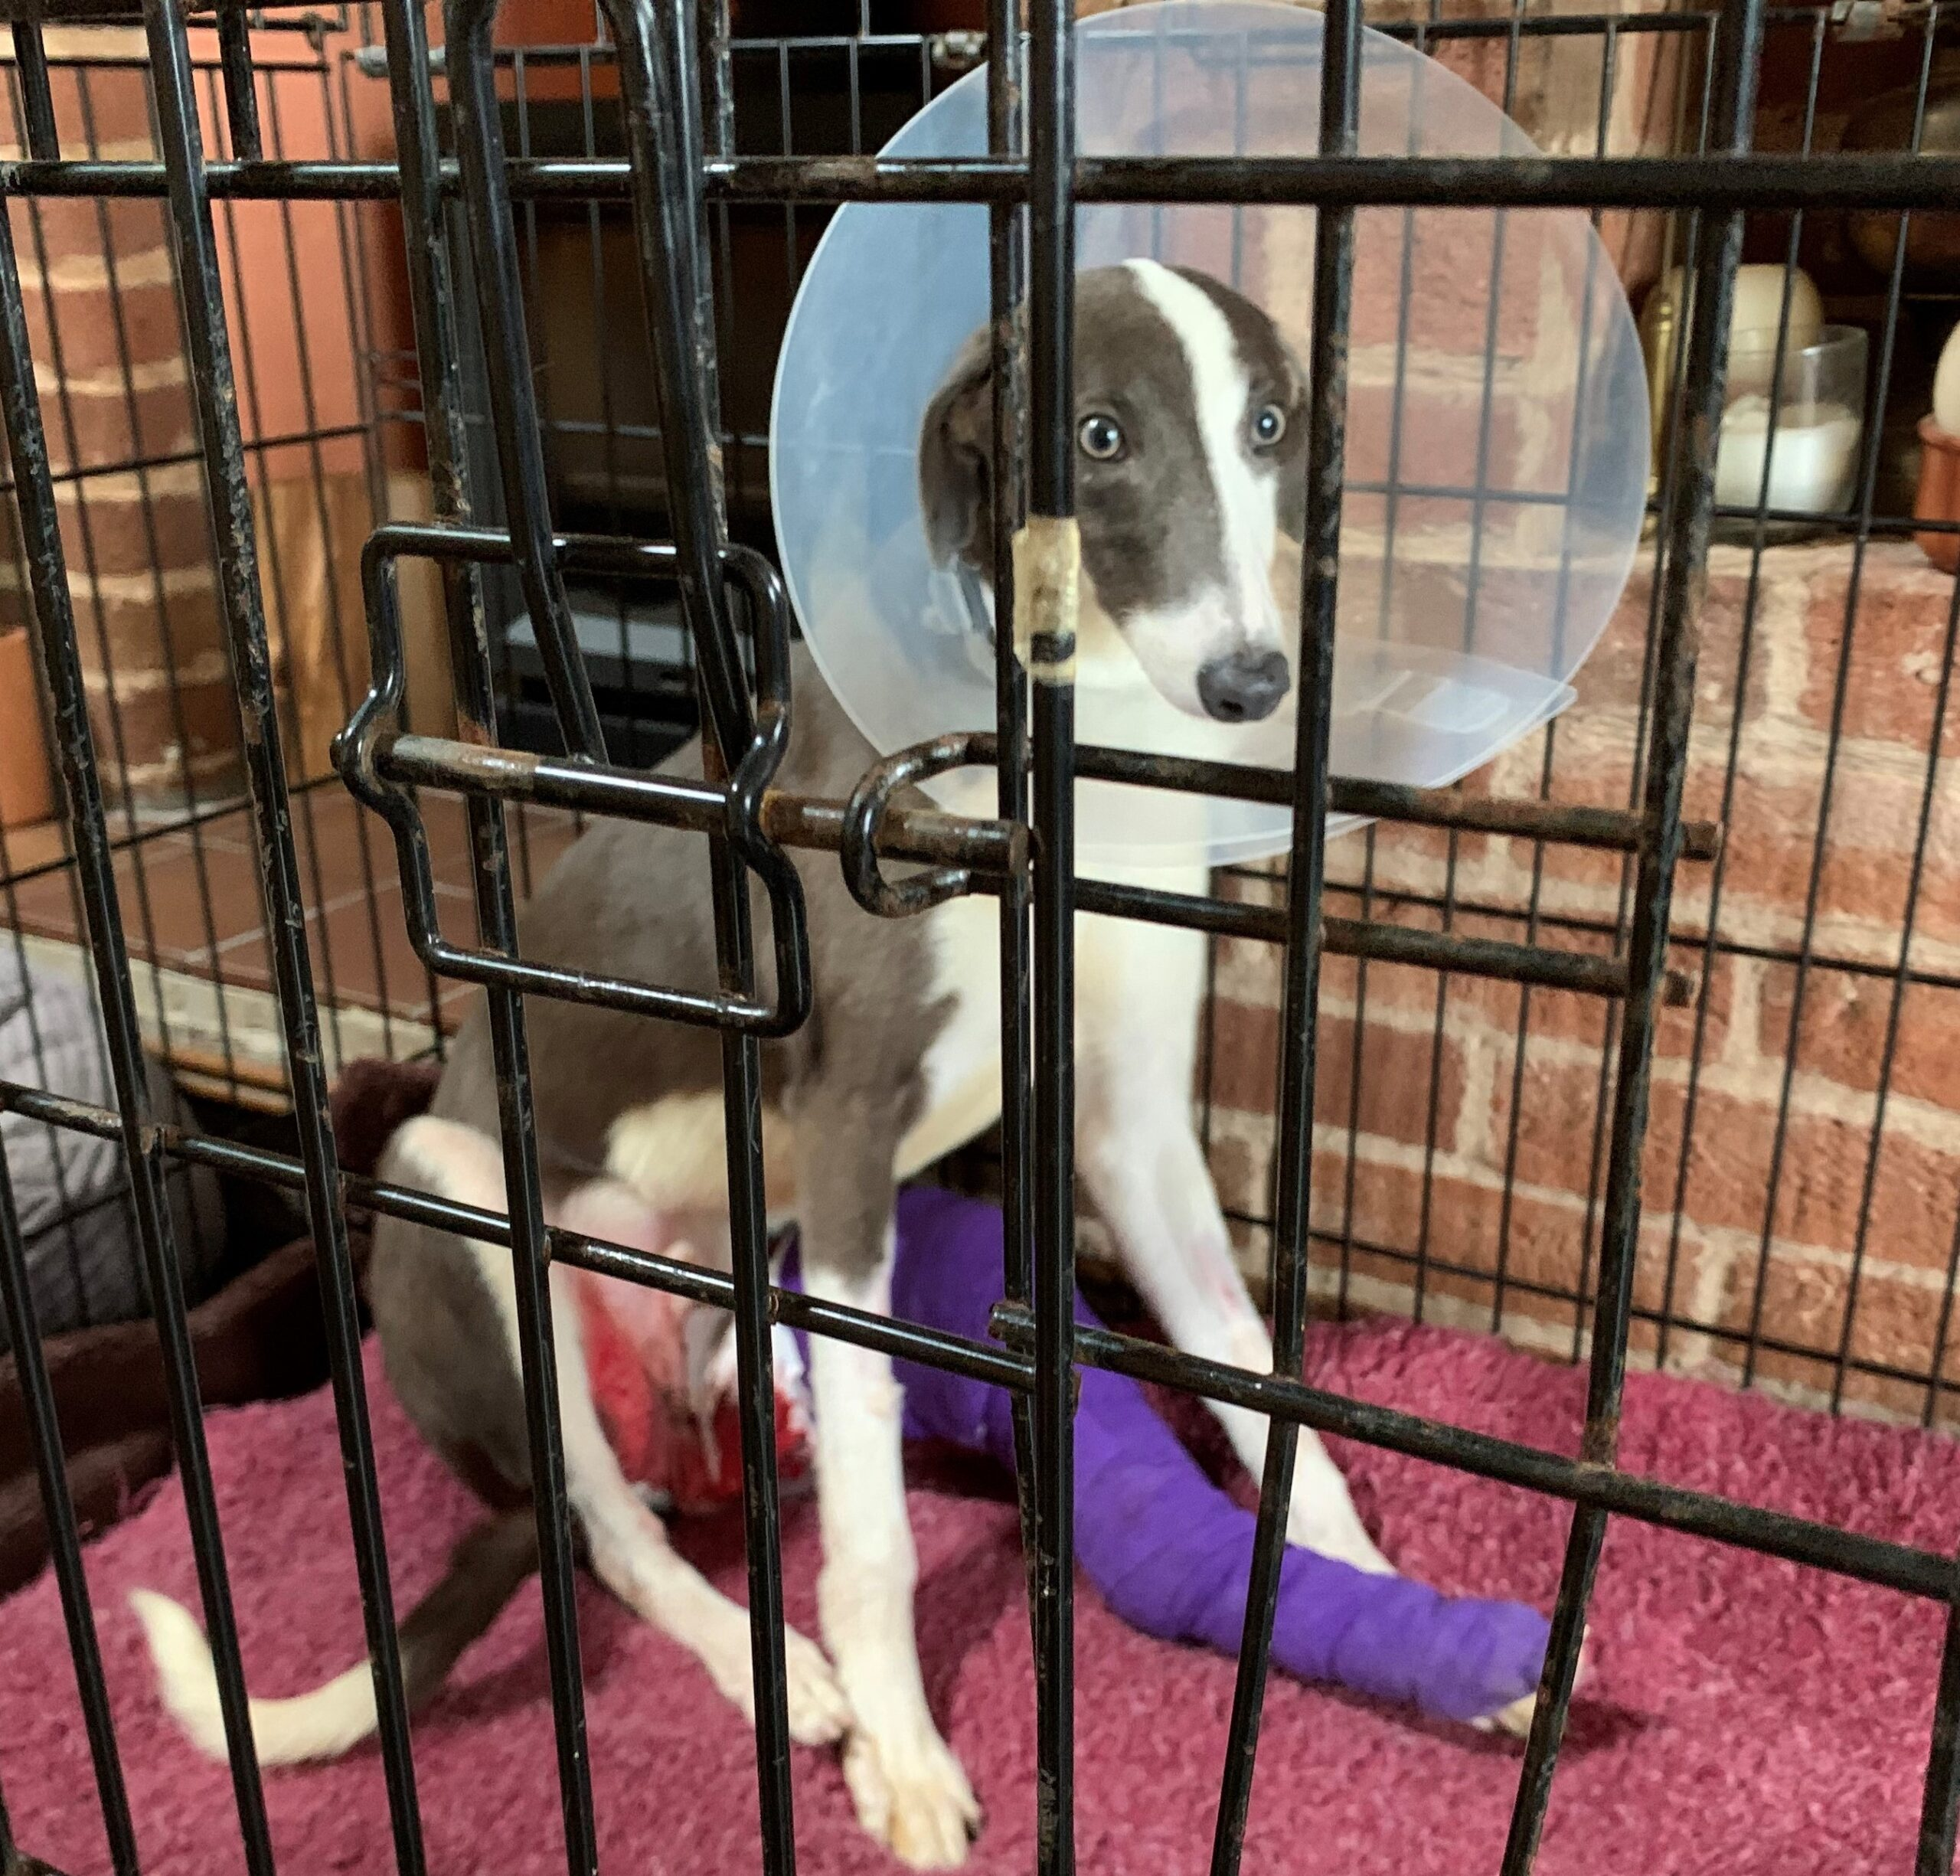 Blue and white lurcher puppy in a crate with a cone on and his leg in a purple plaster cast